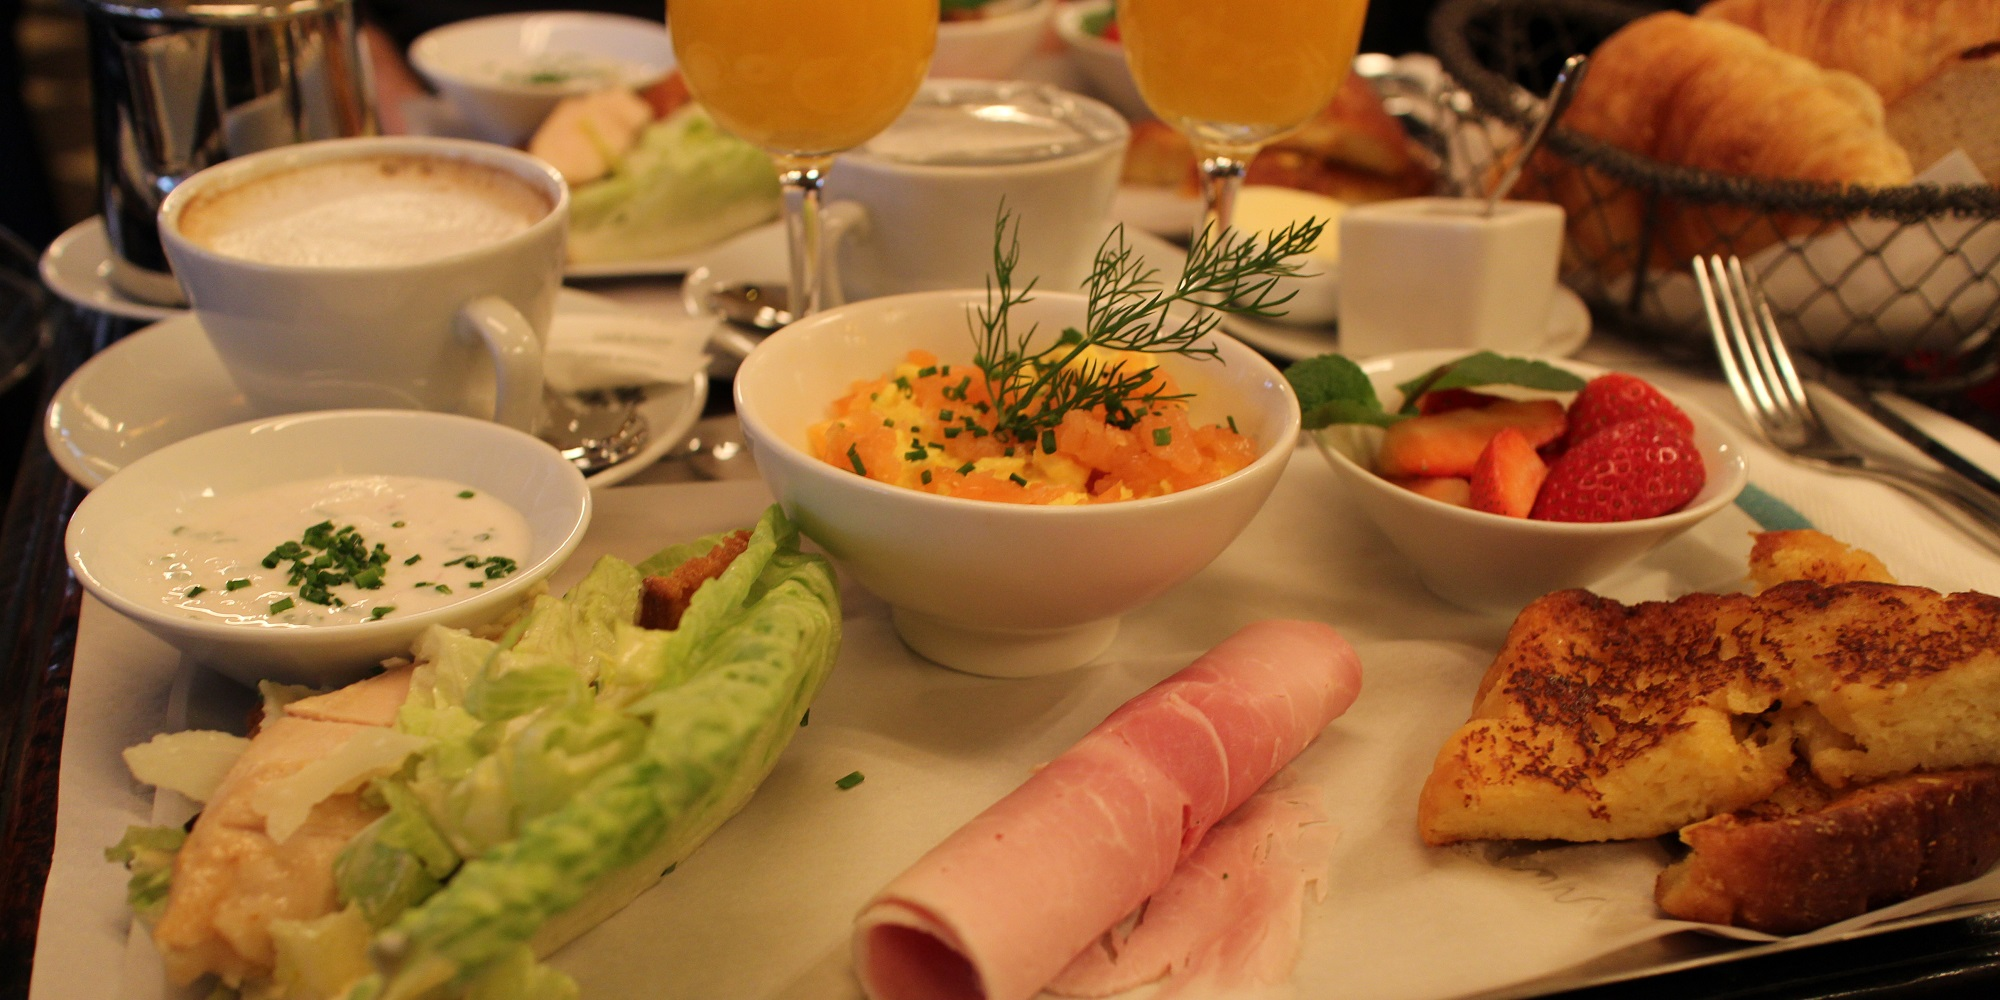 Brunch Paris London (75008 Paris)